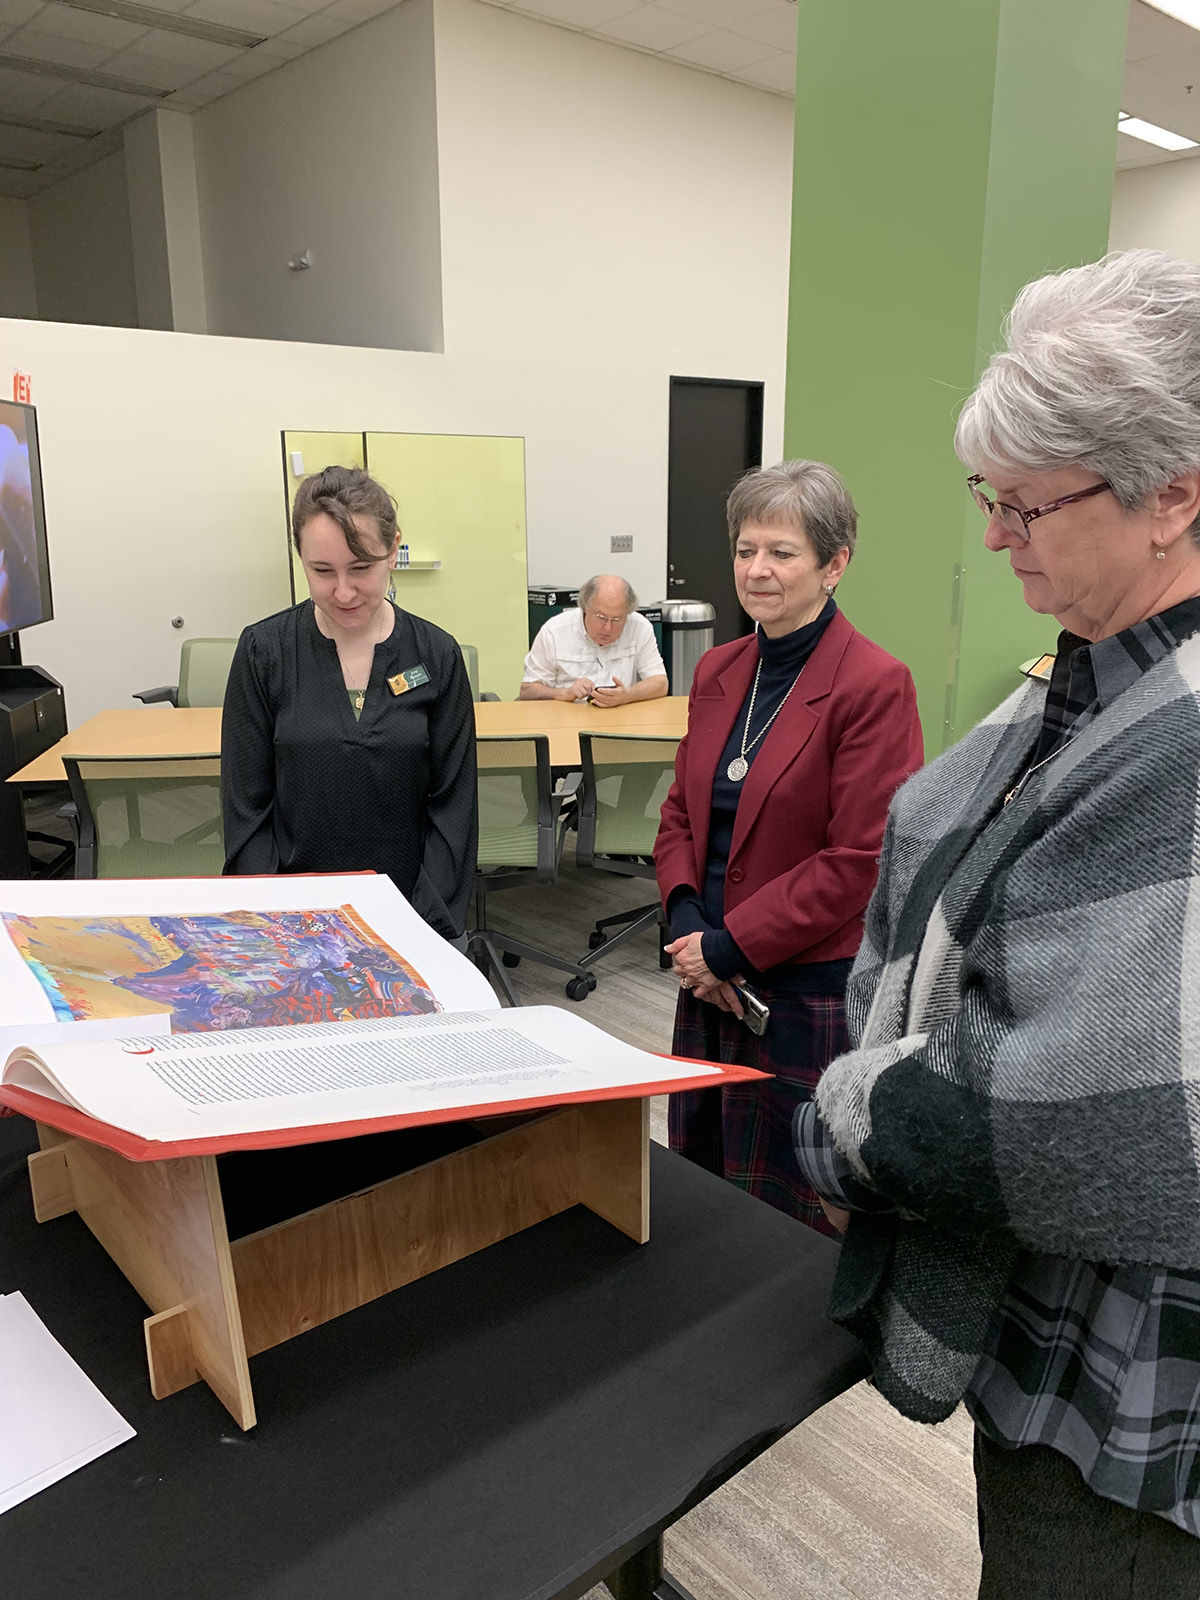 Amy Runyon, Kathy Hillman and Lori Evers view a volume of the St. John's Bible Heritage Edition